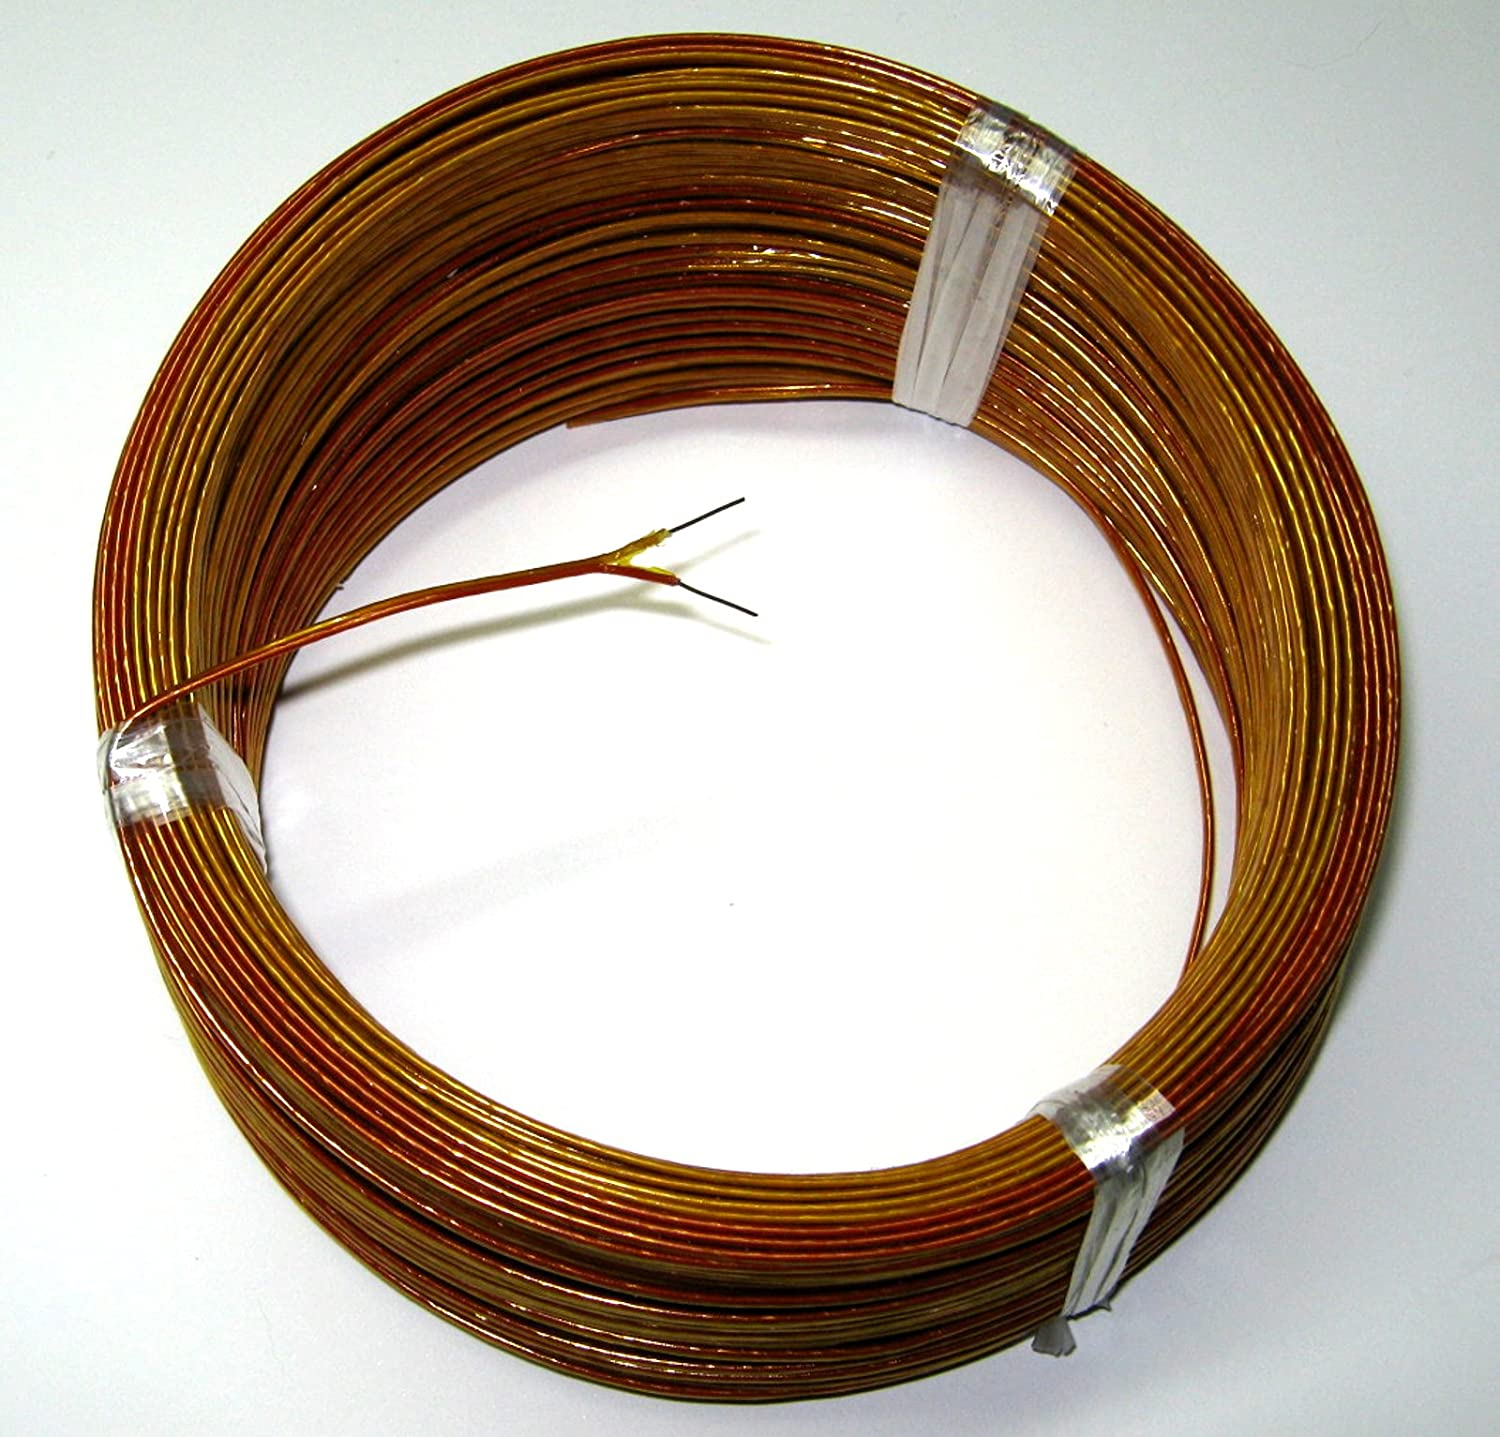 High Temperature K-type Thermocouple Wire AWG 24 w. Kapton ...